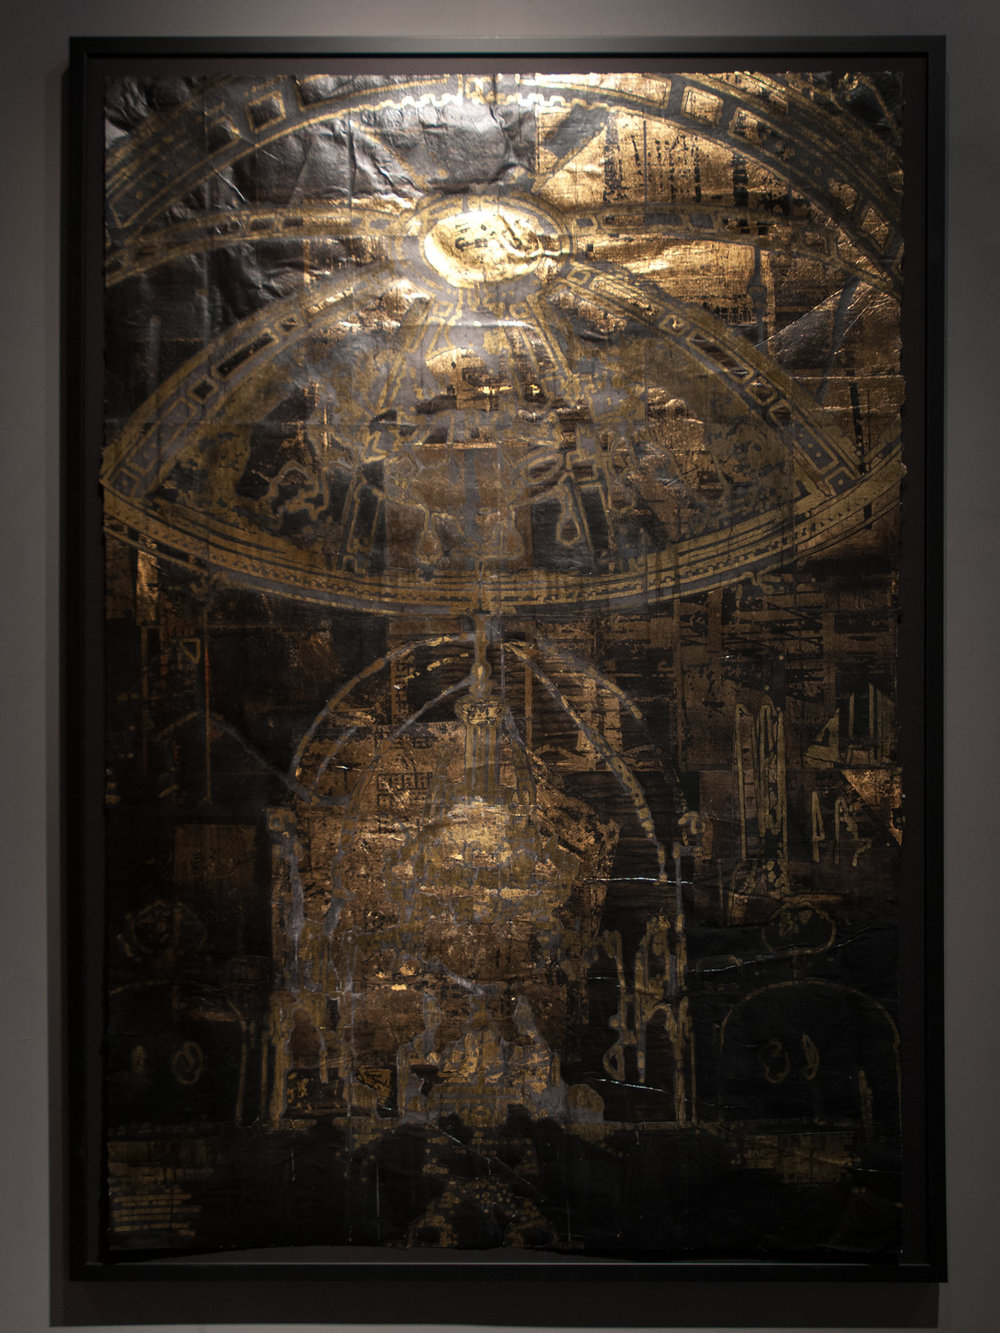 Tenebrae Spatio V, Gold Altar gold leaf and foil, india ink, acrylic, and collage 68 x 47 inches EWA004